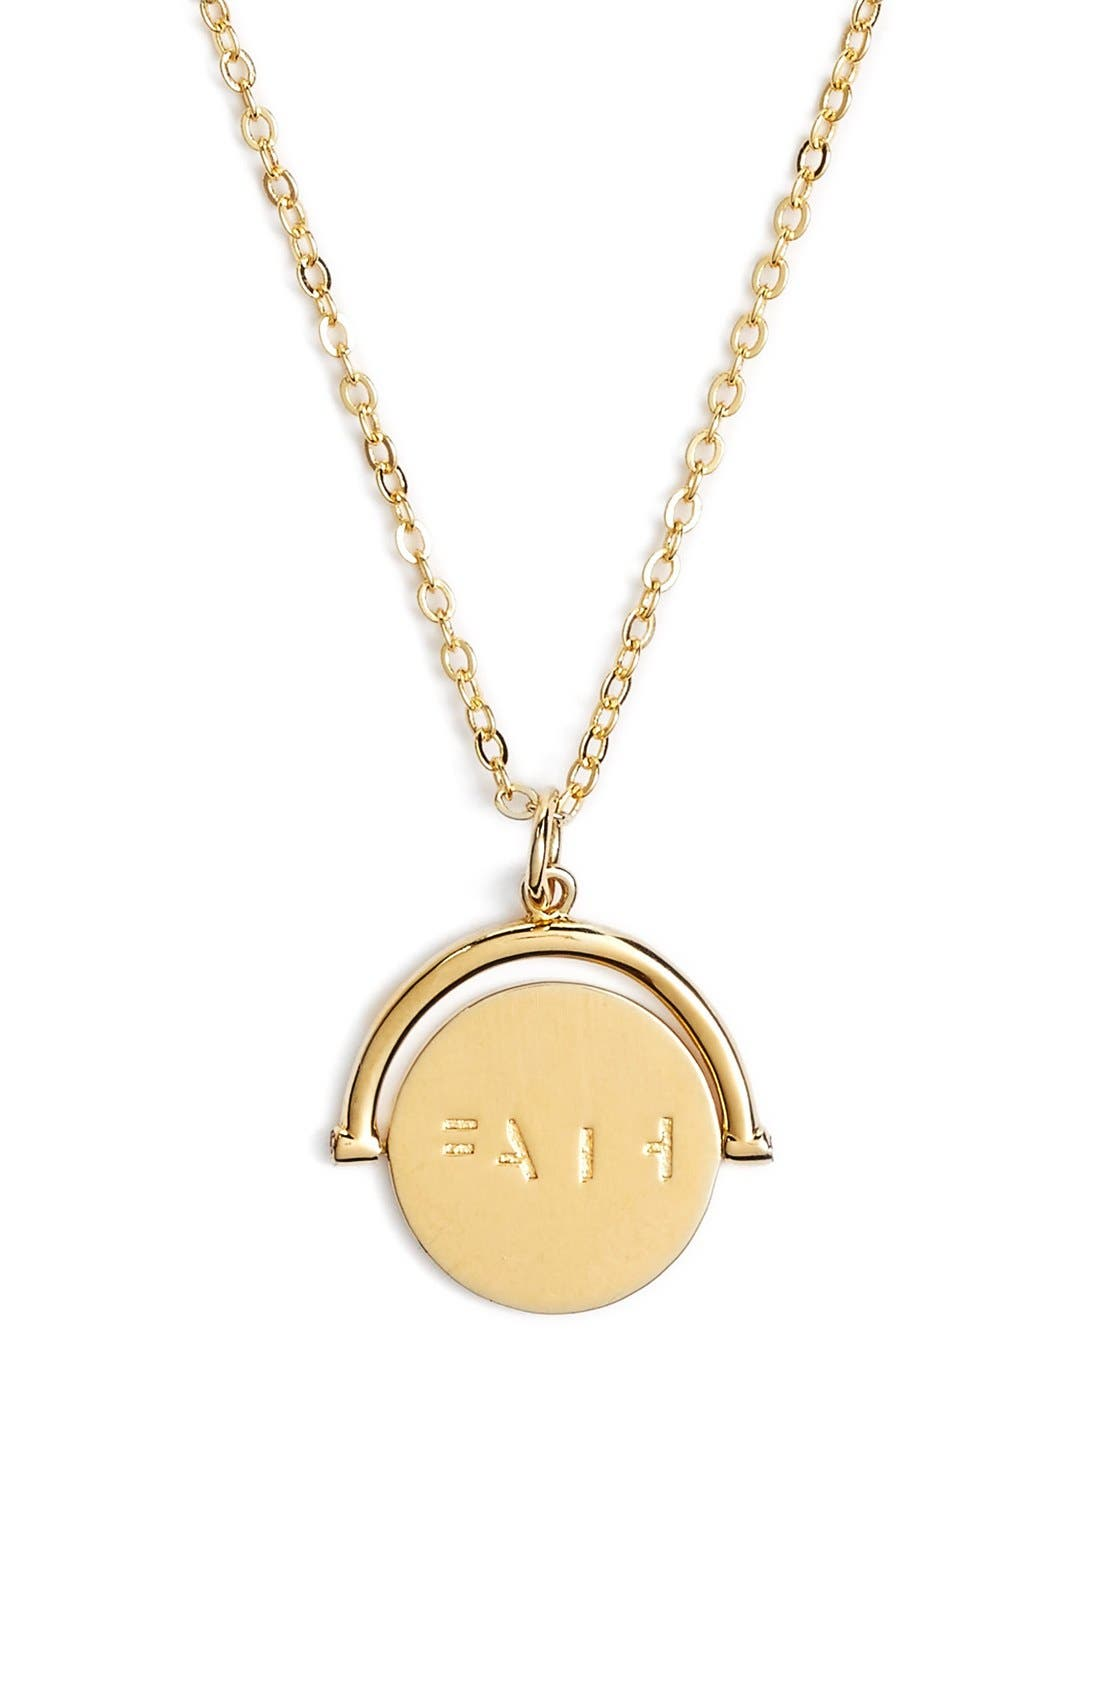 LULU DK Faith Love Code Charm Necklace